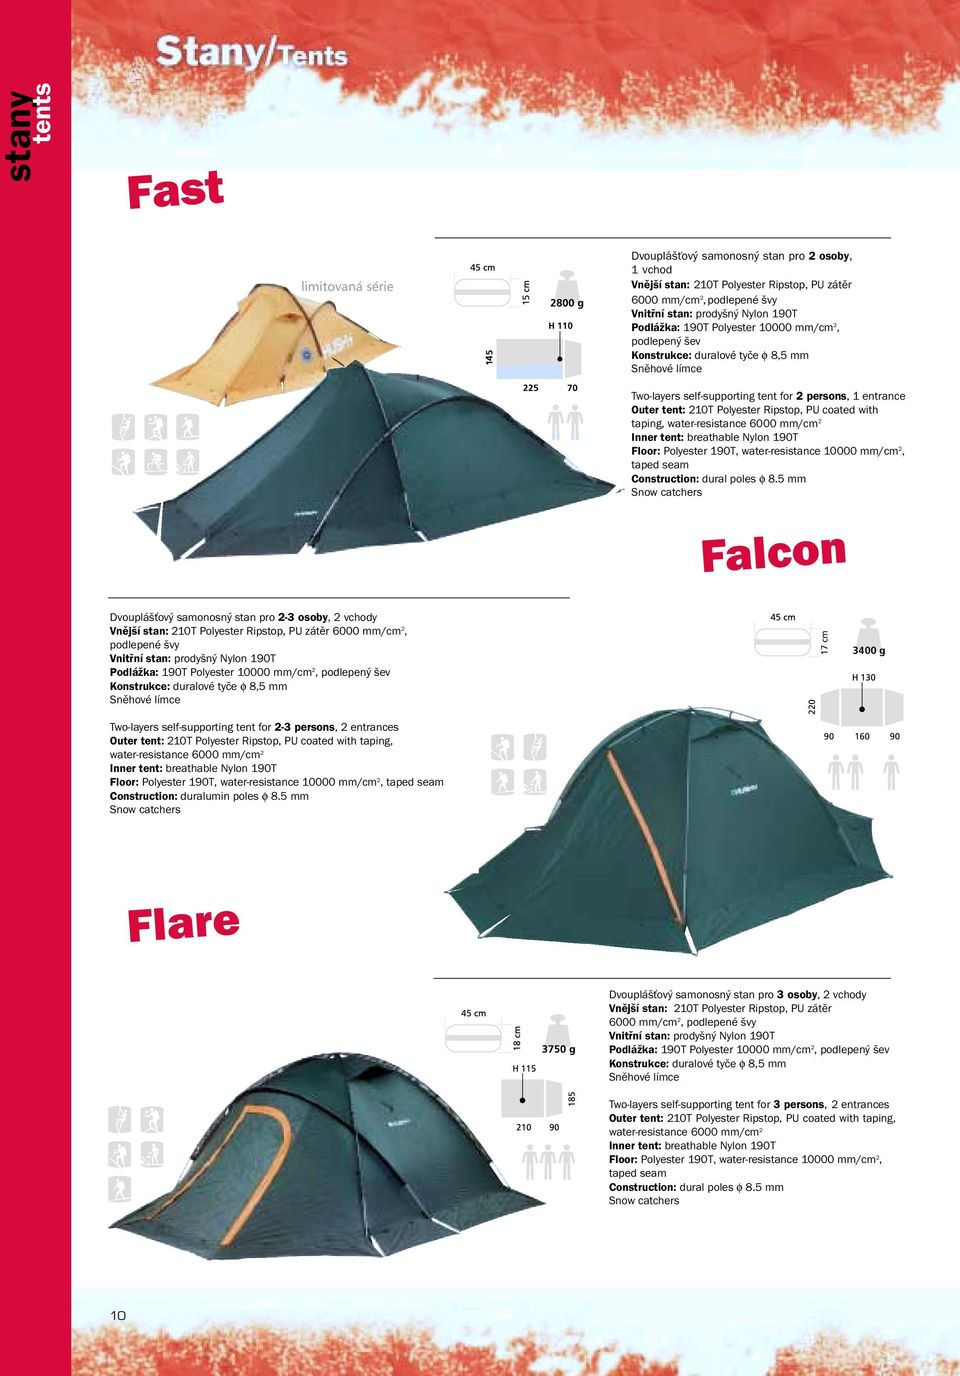 tent for 2-3 persons, Outer tent: 210T Polyester Ripstop, PU coated with taping, water-resistance 6000 mm/cm 2 10000 mm/cm 2, Construction: duralumin poles φ 8.